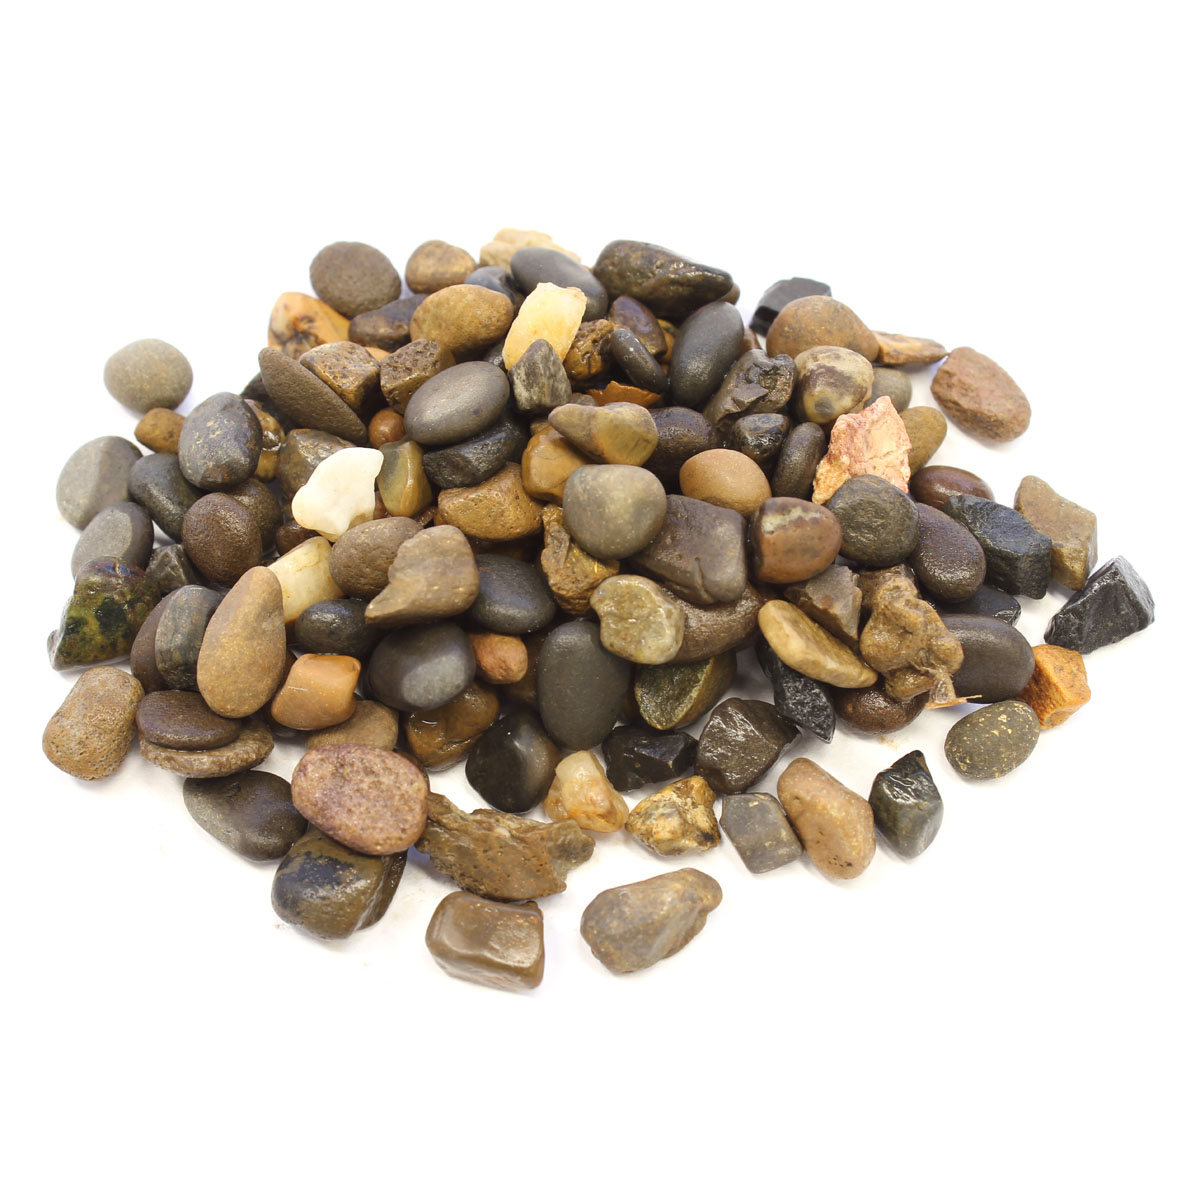 31014 Landscaping Pebbles - Fine